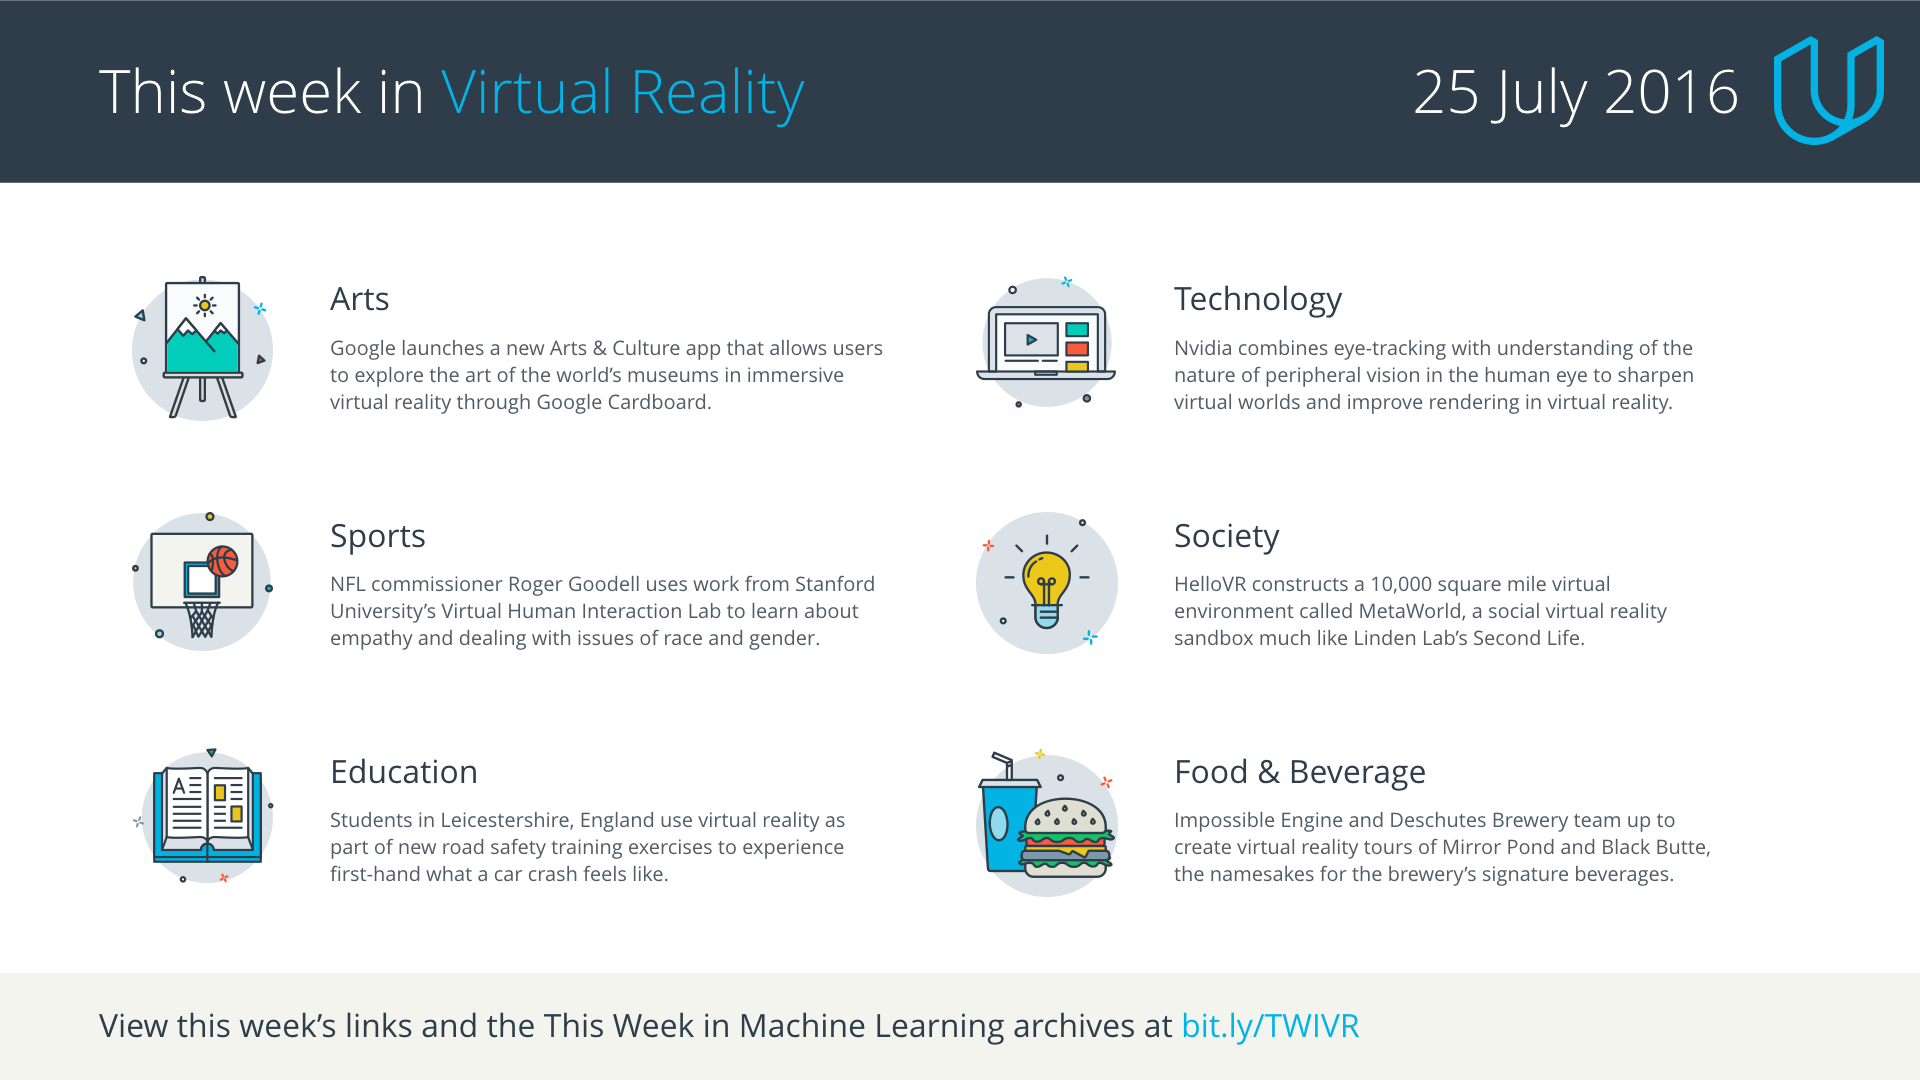 This Week in Virtual Reality, 25 July 2016 - Udacity Inc